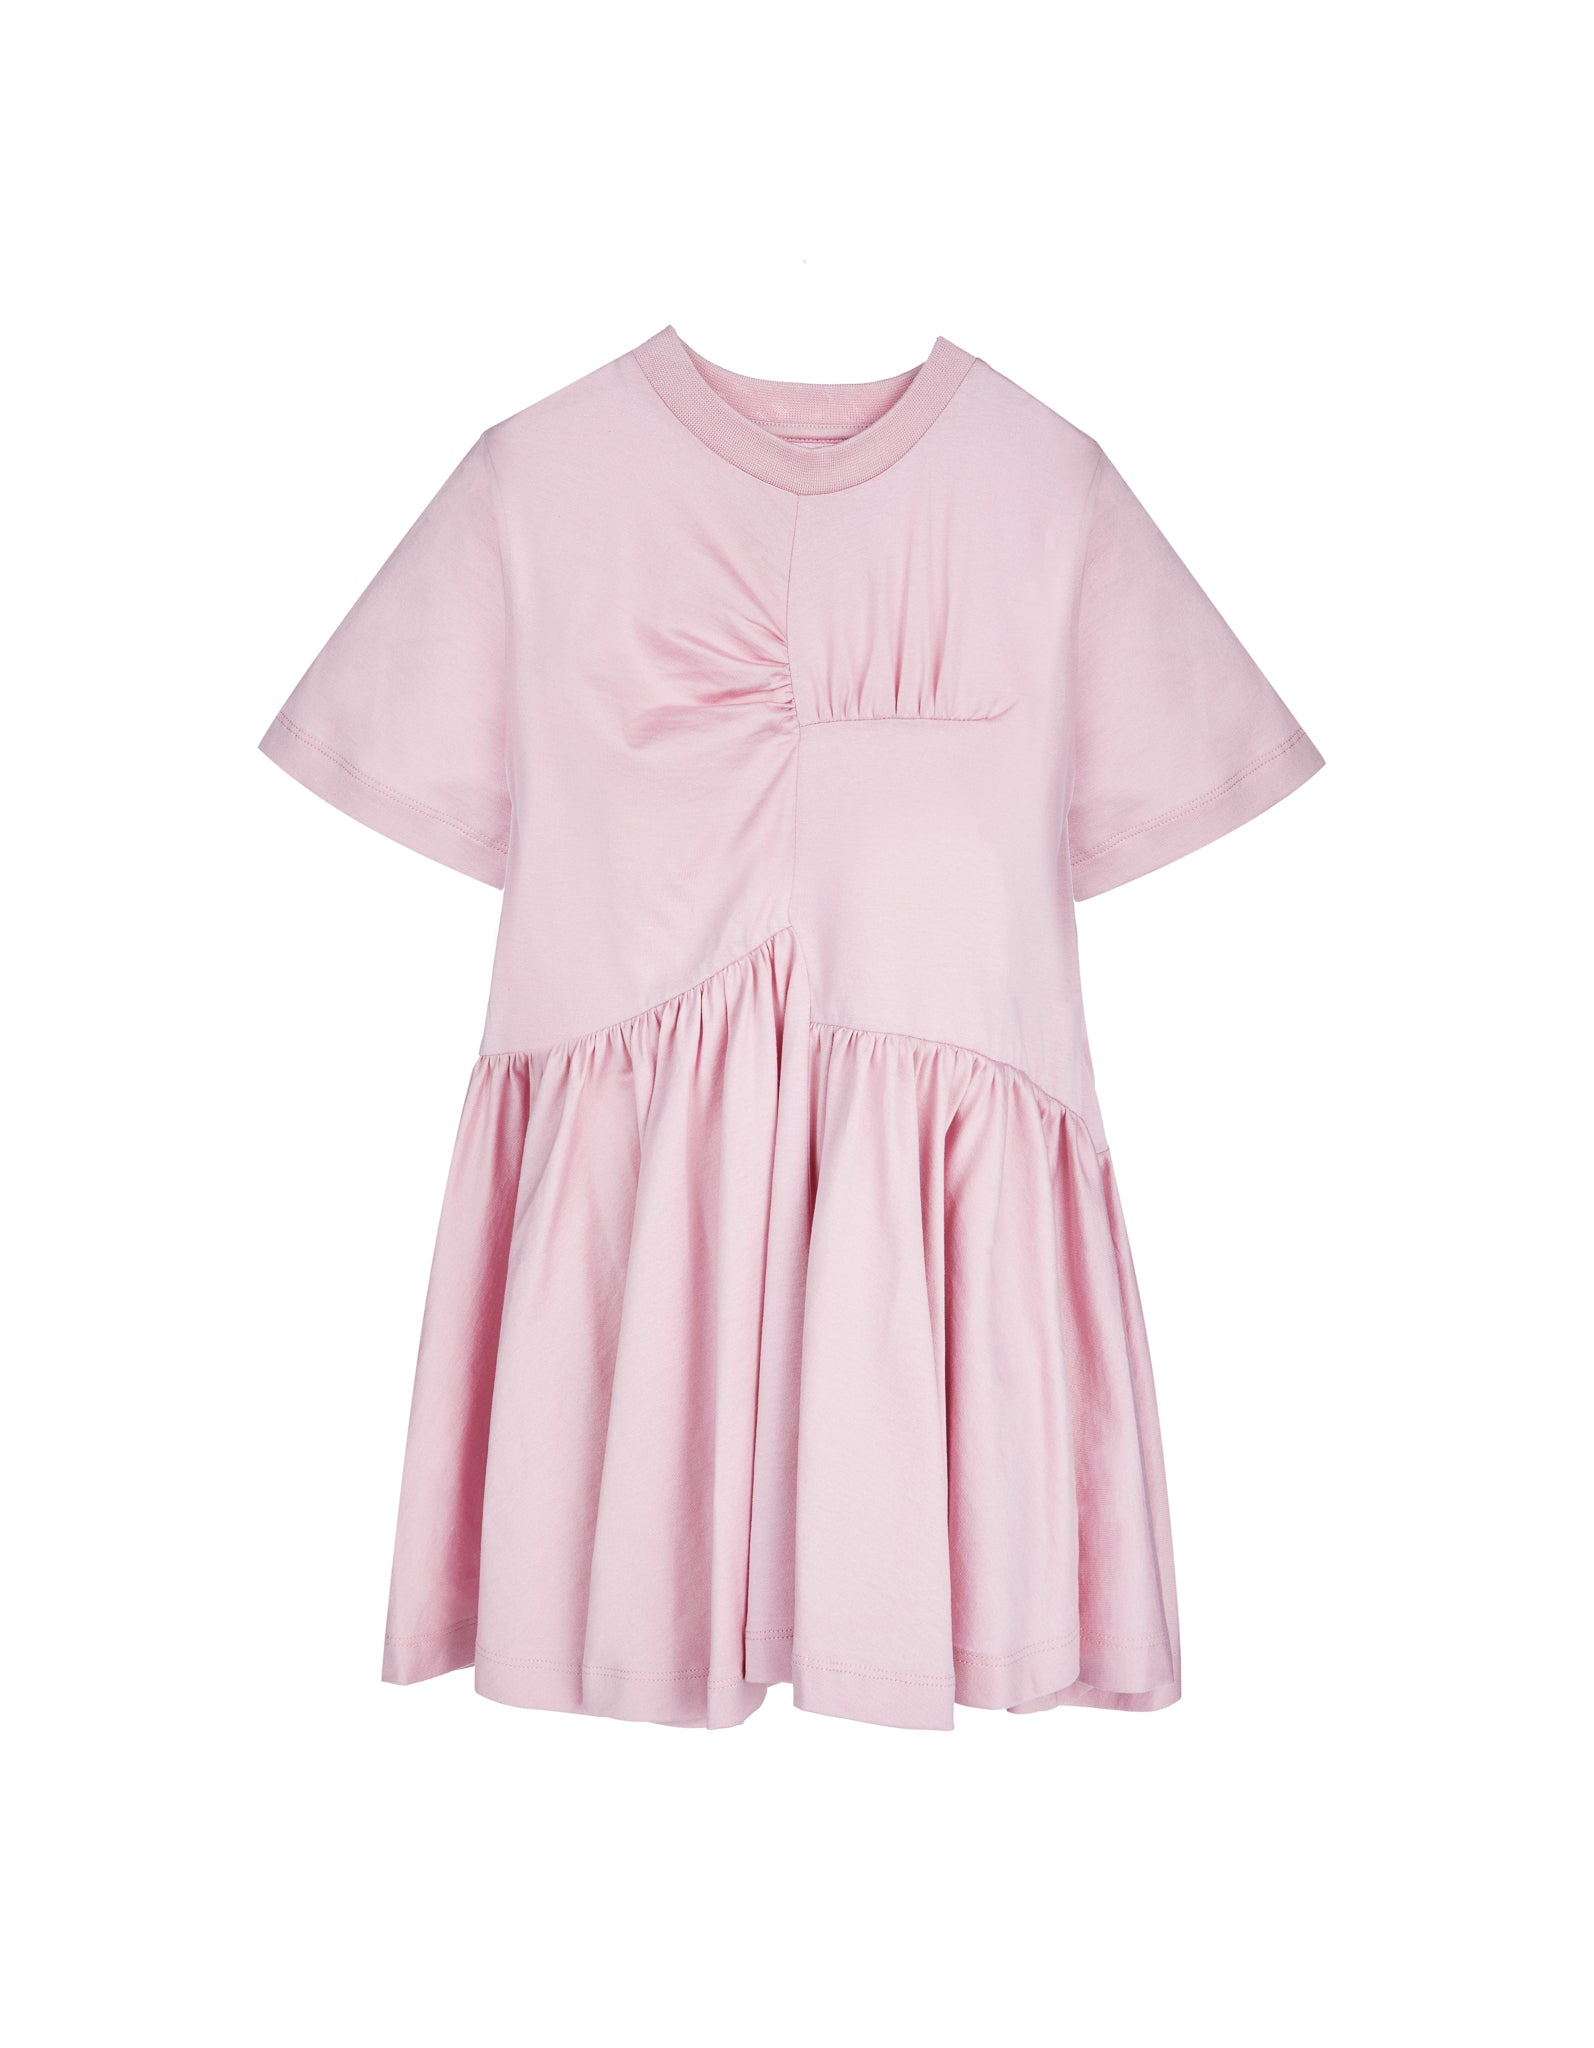 M'A KIDS GATHERED SEAMS DRESS IN PINK